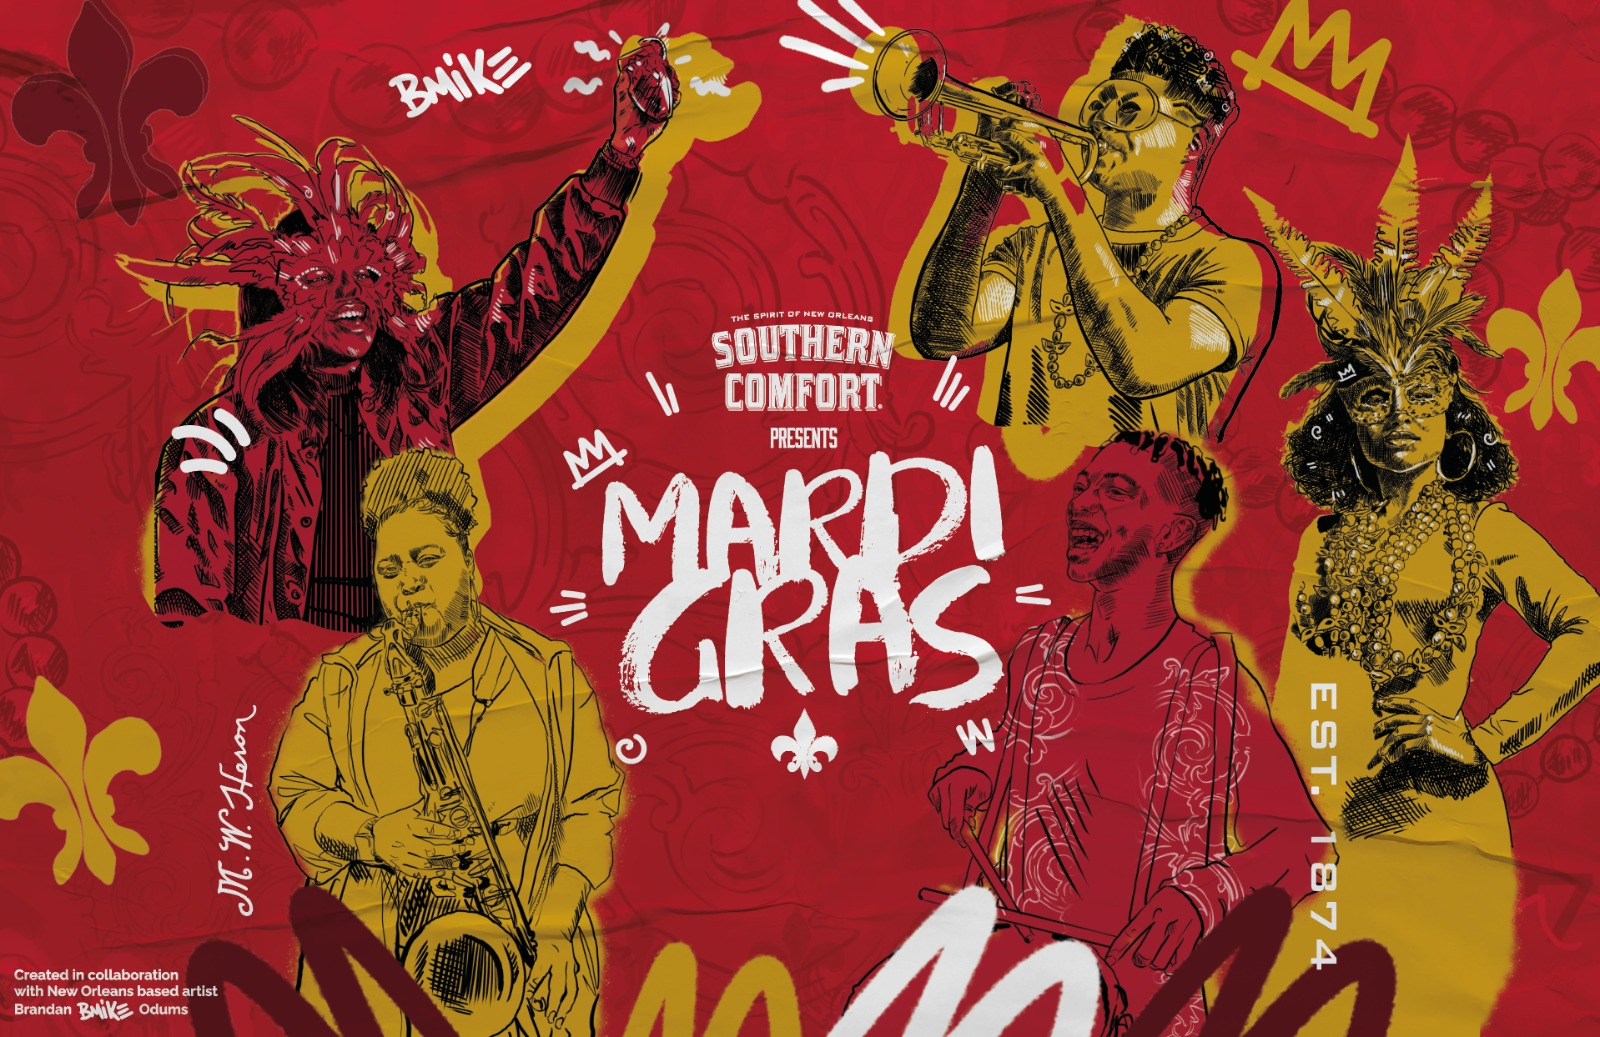 SOUTHERN COMFORT PRESENTS MARDI GRAS VIRTUAL PARTY!